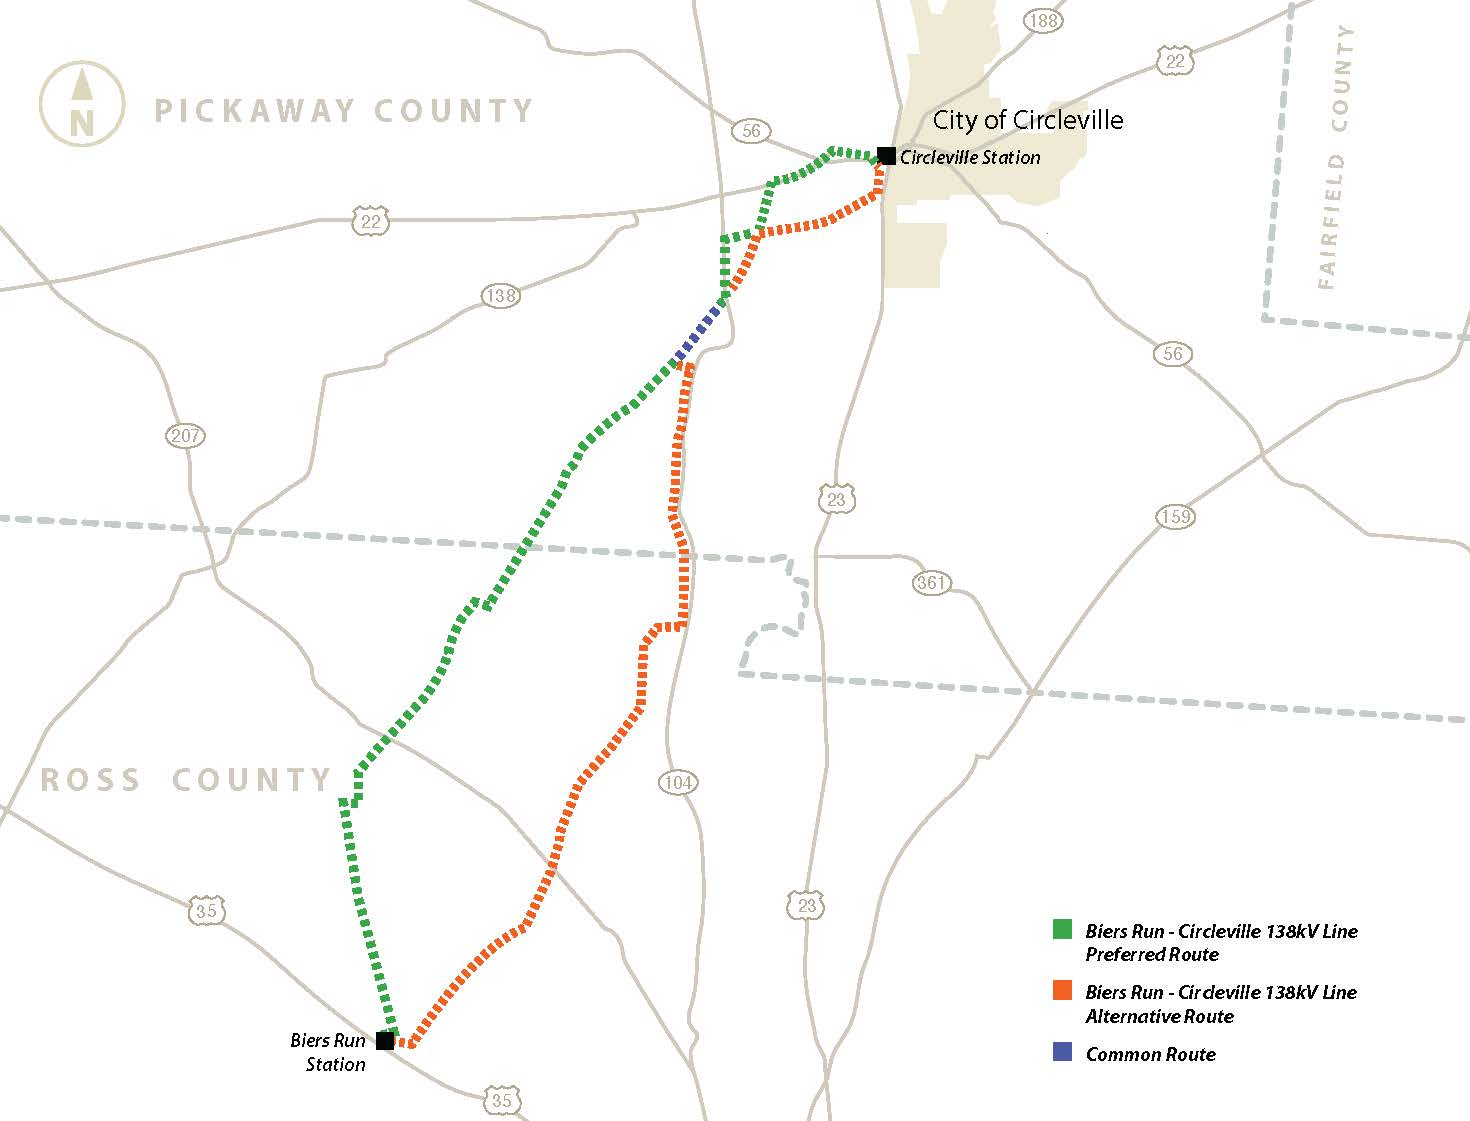 Map Of Biers Run Circleville Transmission Line Project